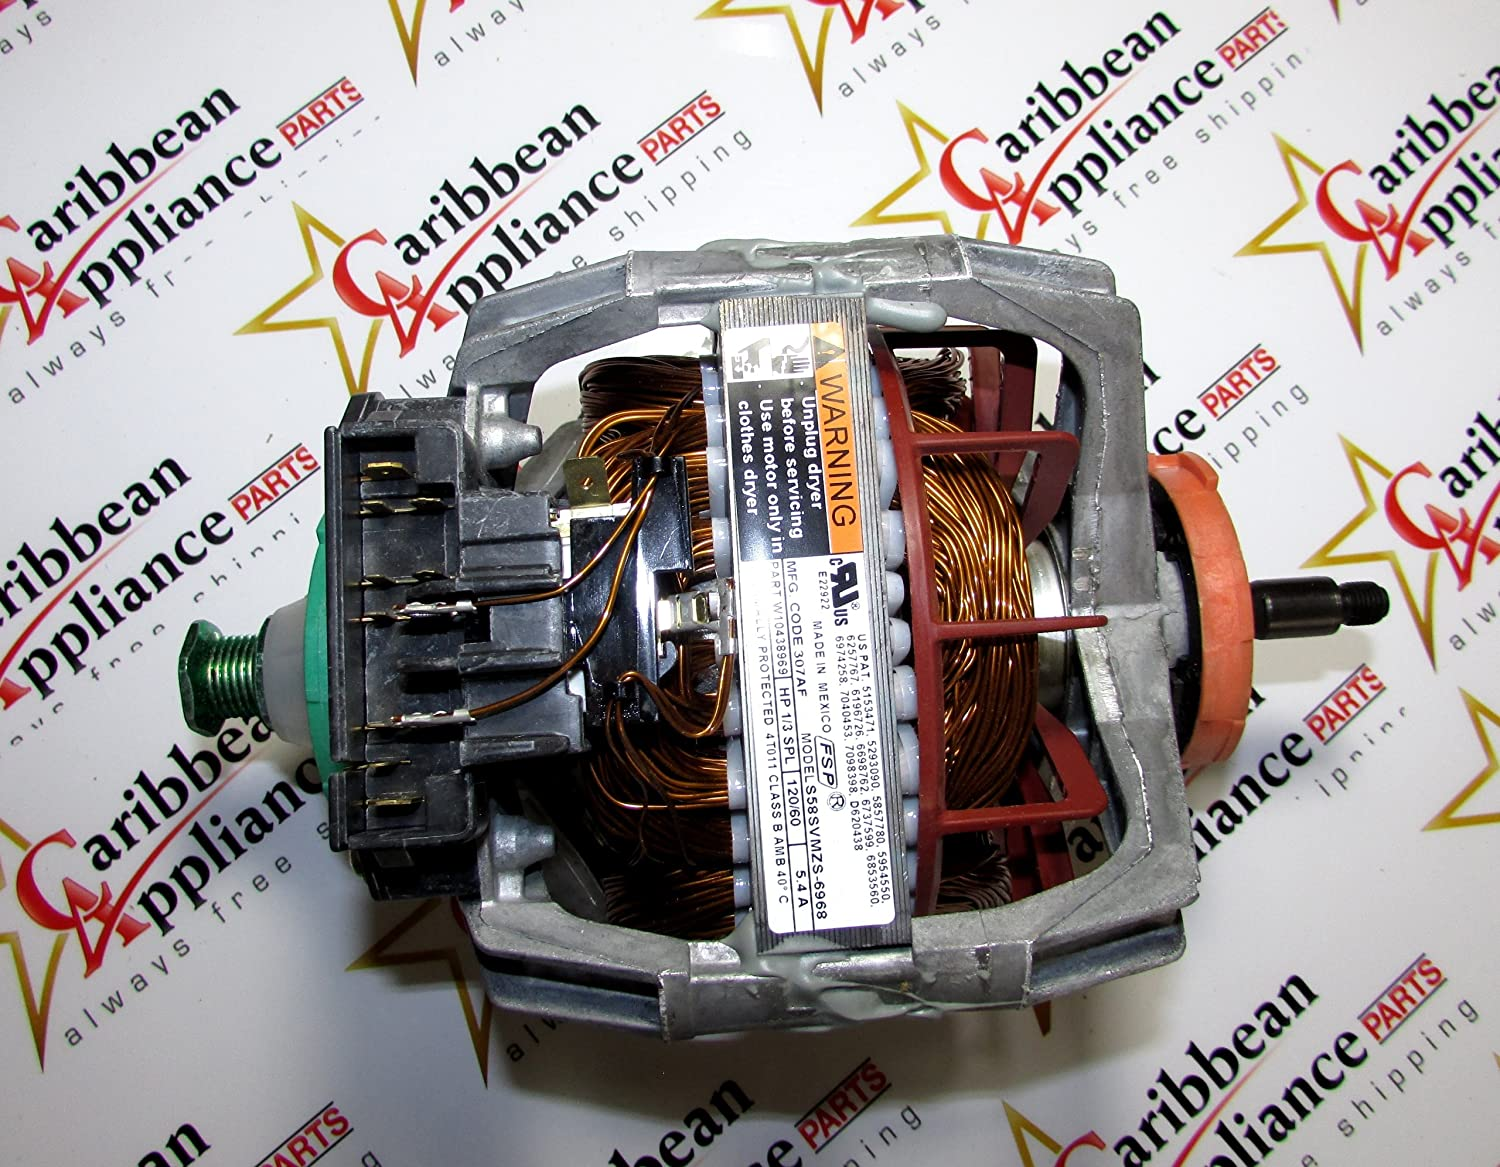 Amazon.com: Whirlpool Dryer Motor 279787 3395654 8538263: Home ...